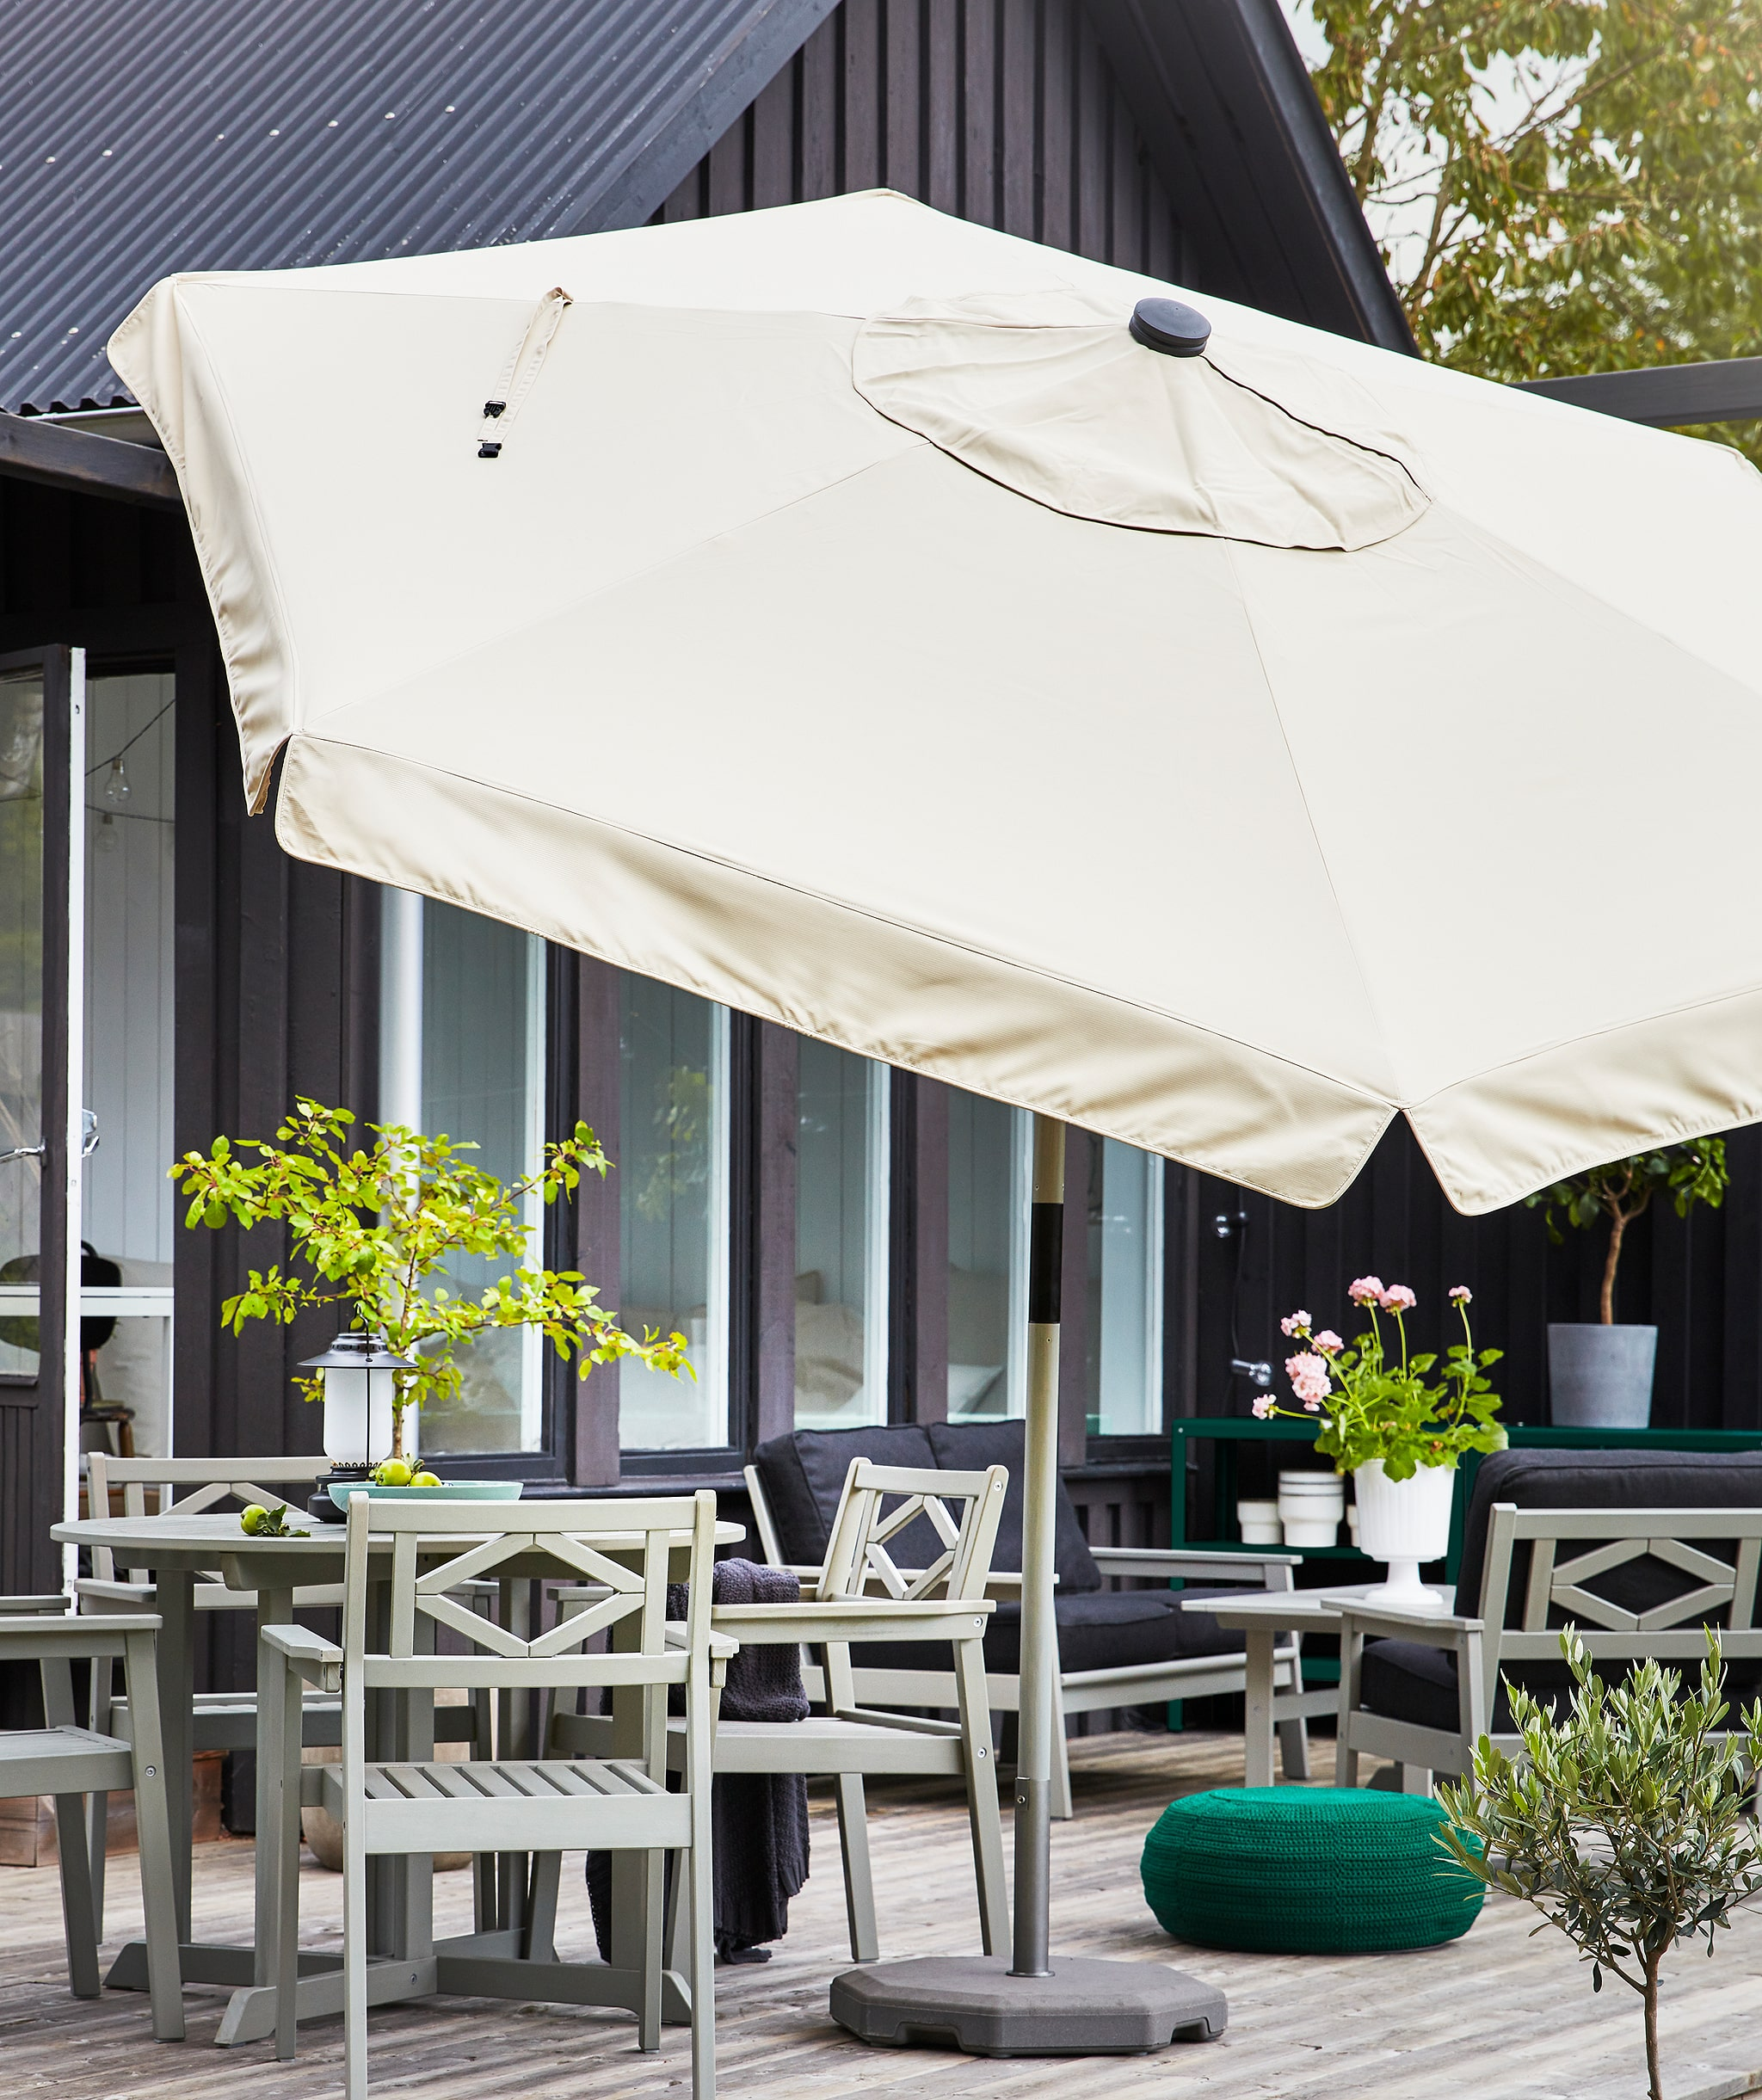 A large parasol in beige standing on a terrace with grey outdoor furniture and plants.